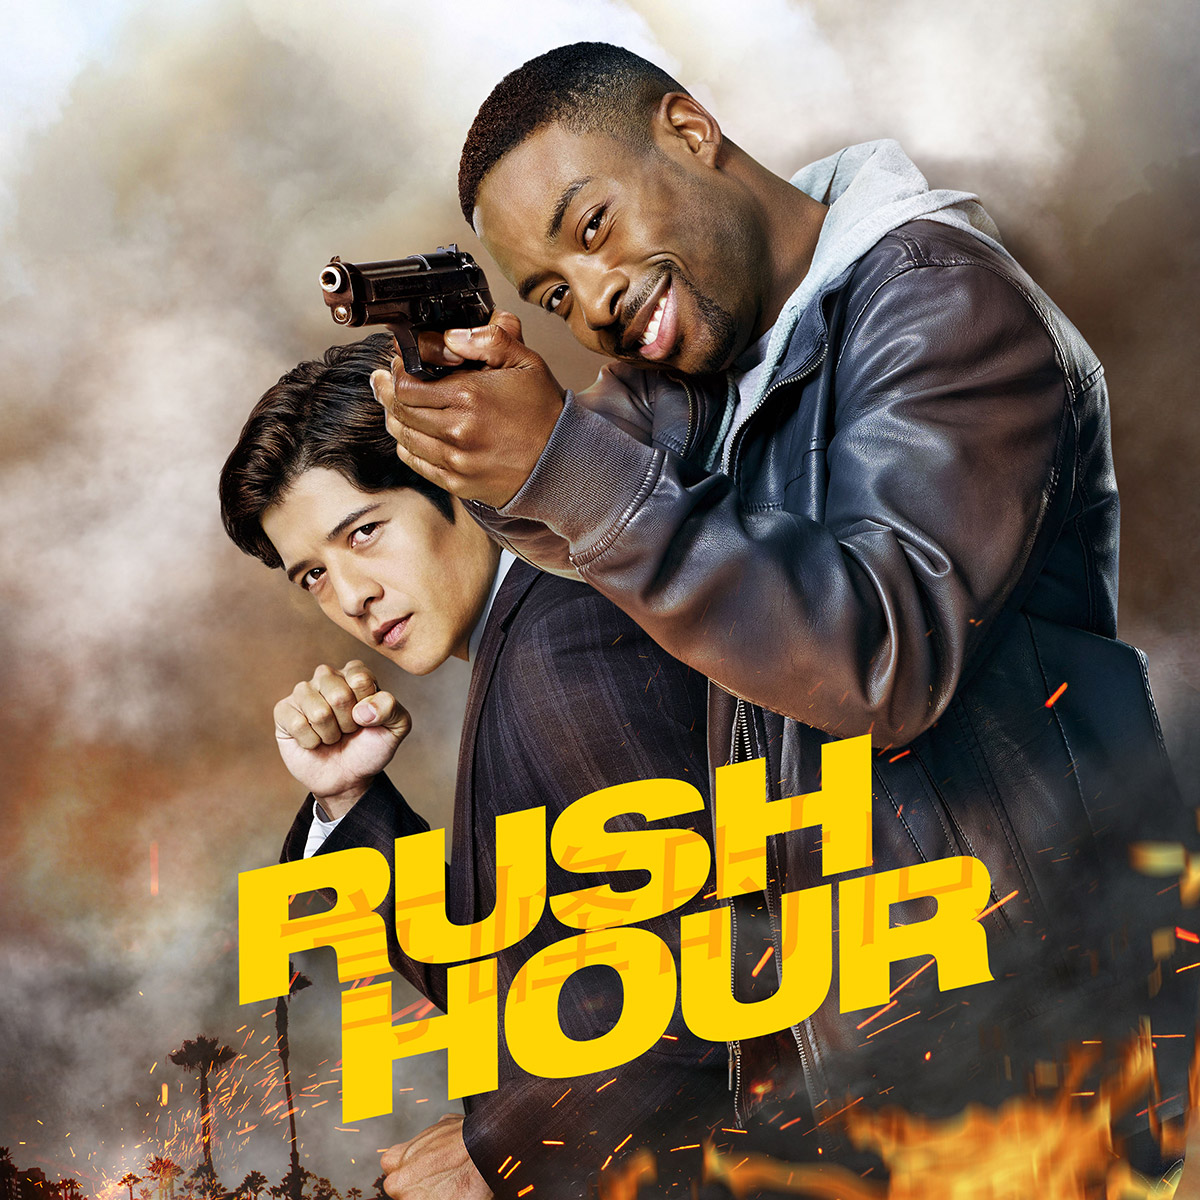 Rush-Hour-CBS-TV-series.jpg